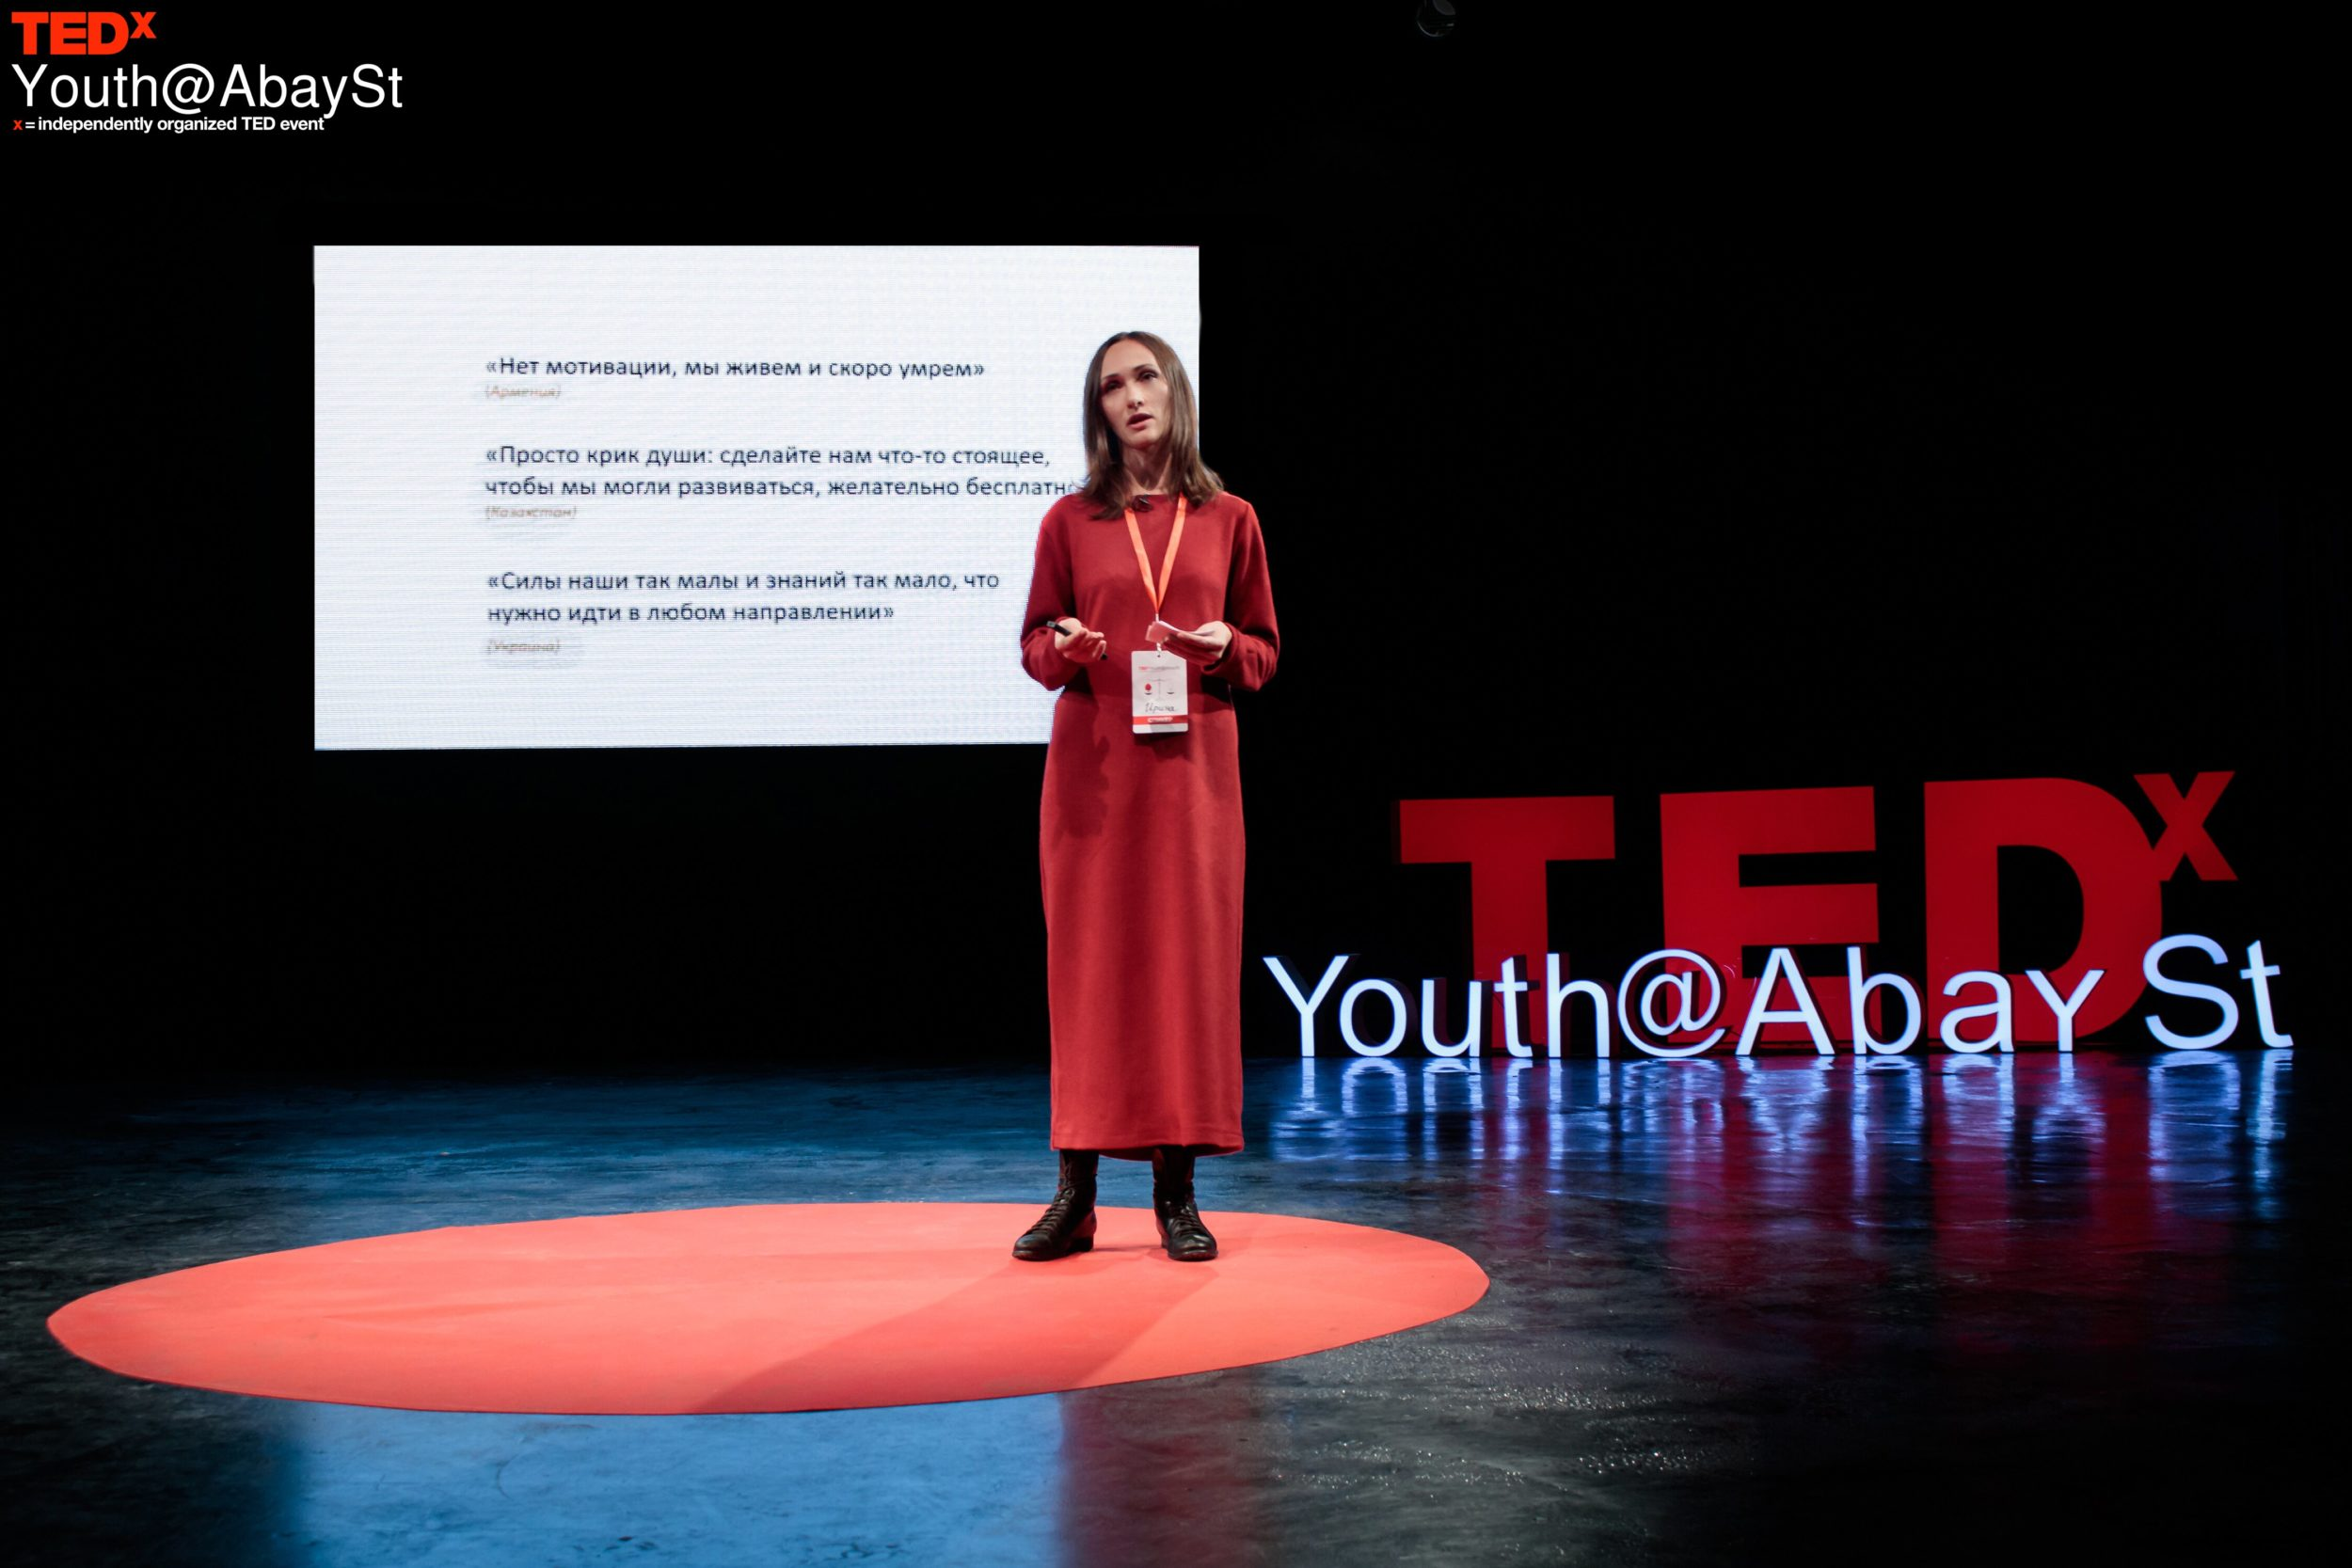 TEDxYouth AbaySt